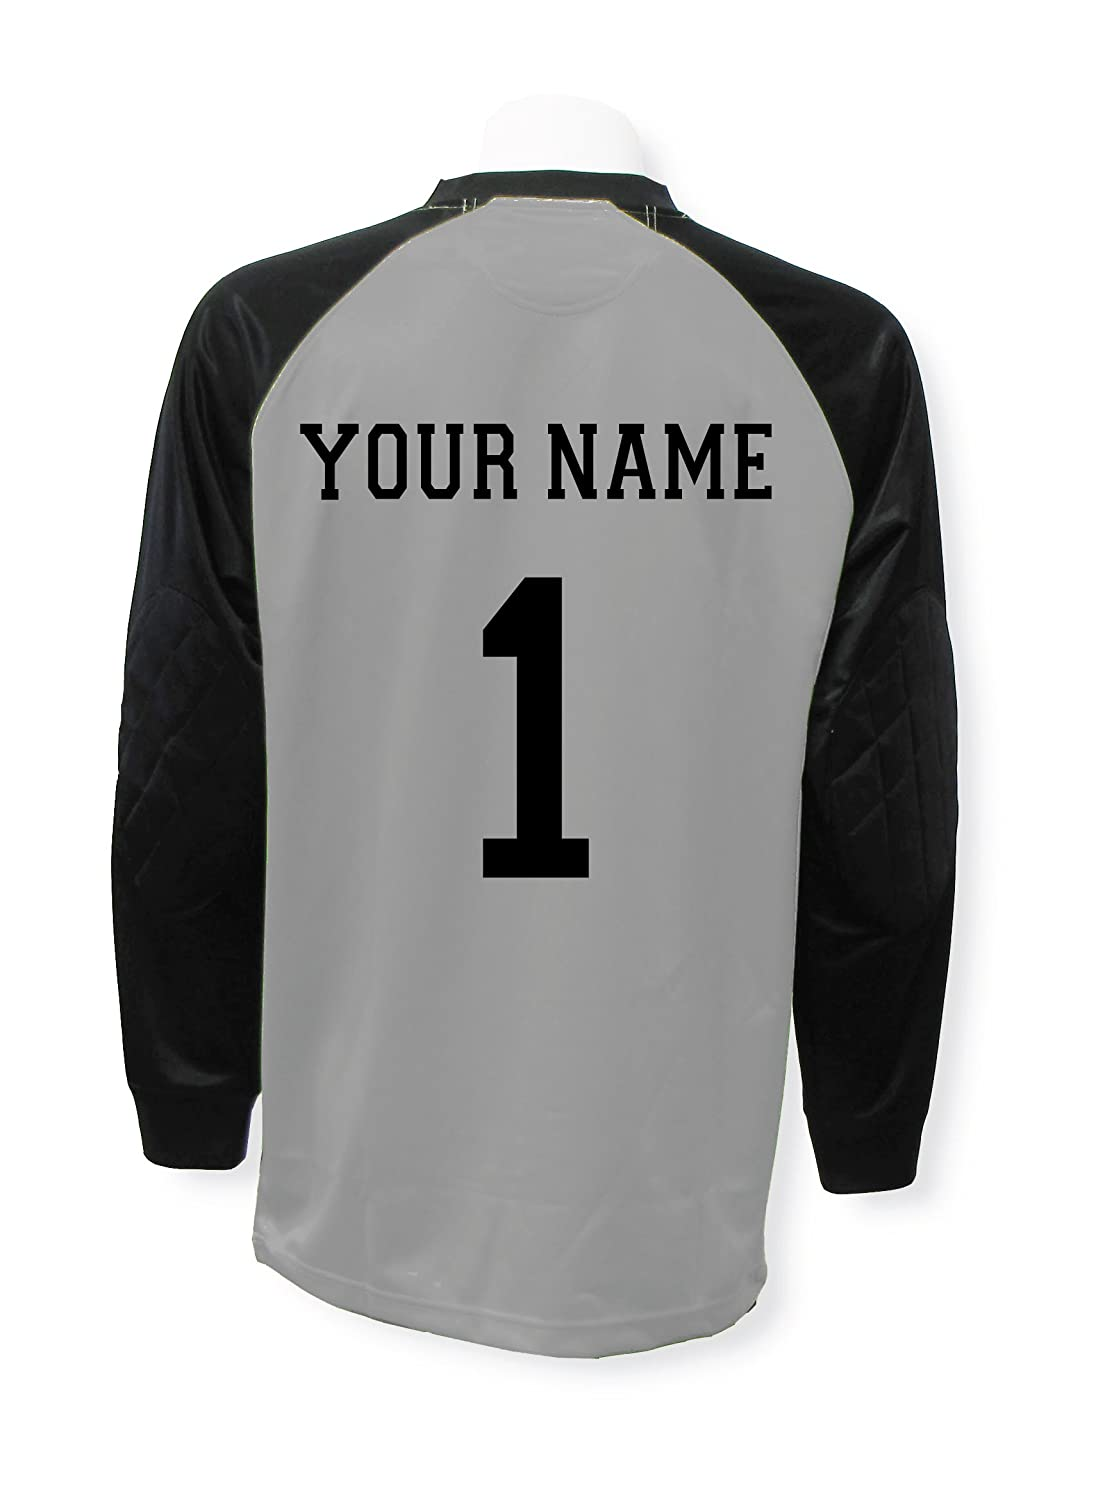 Soccer Goalkeeper Jersey Personalized with your name and number B013TSSDBC Adult Medium|シルバー シルバー Adult Medium